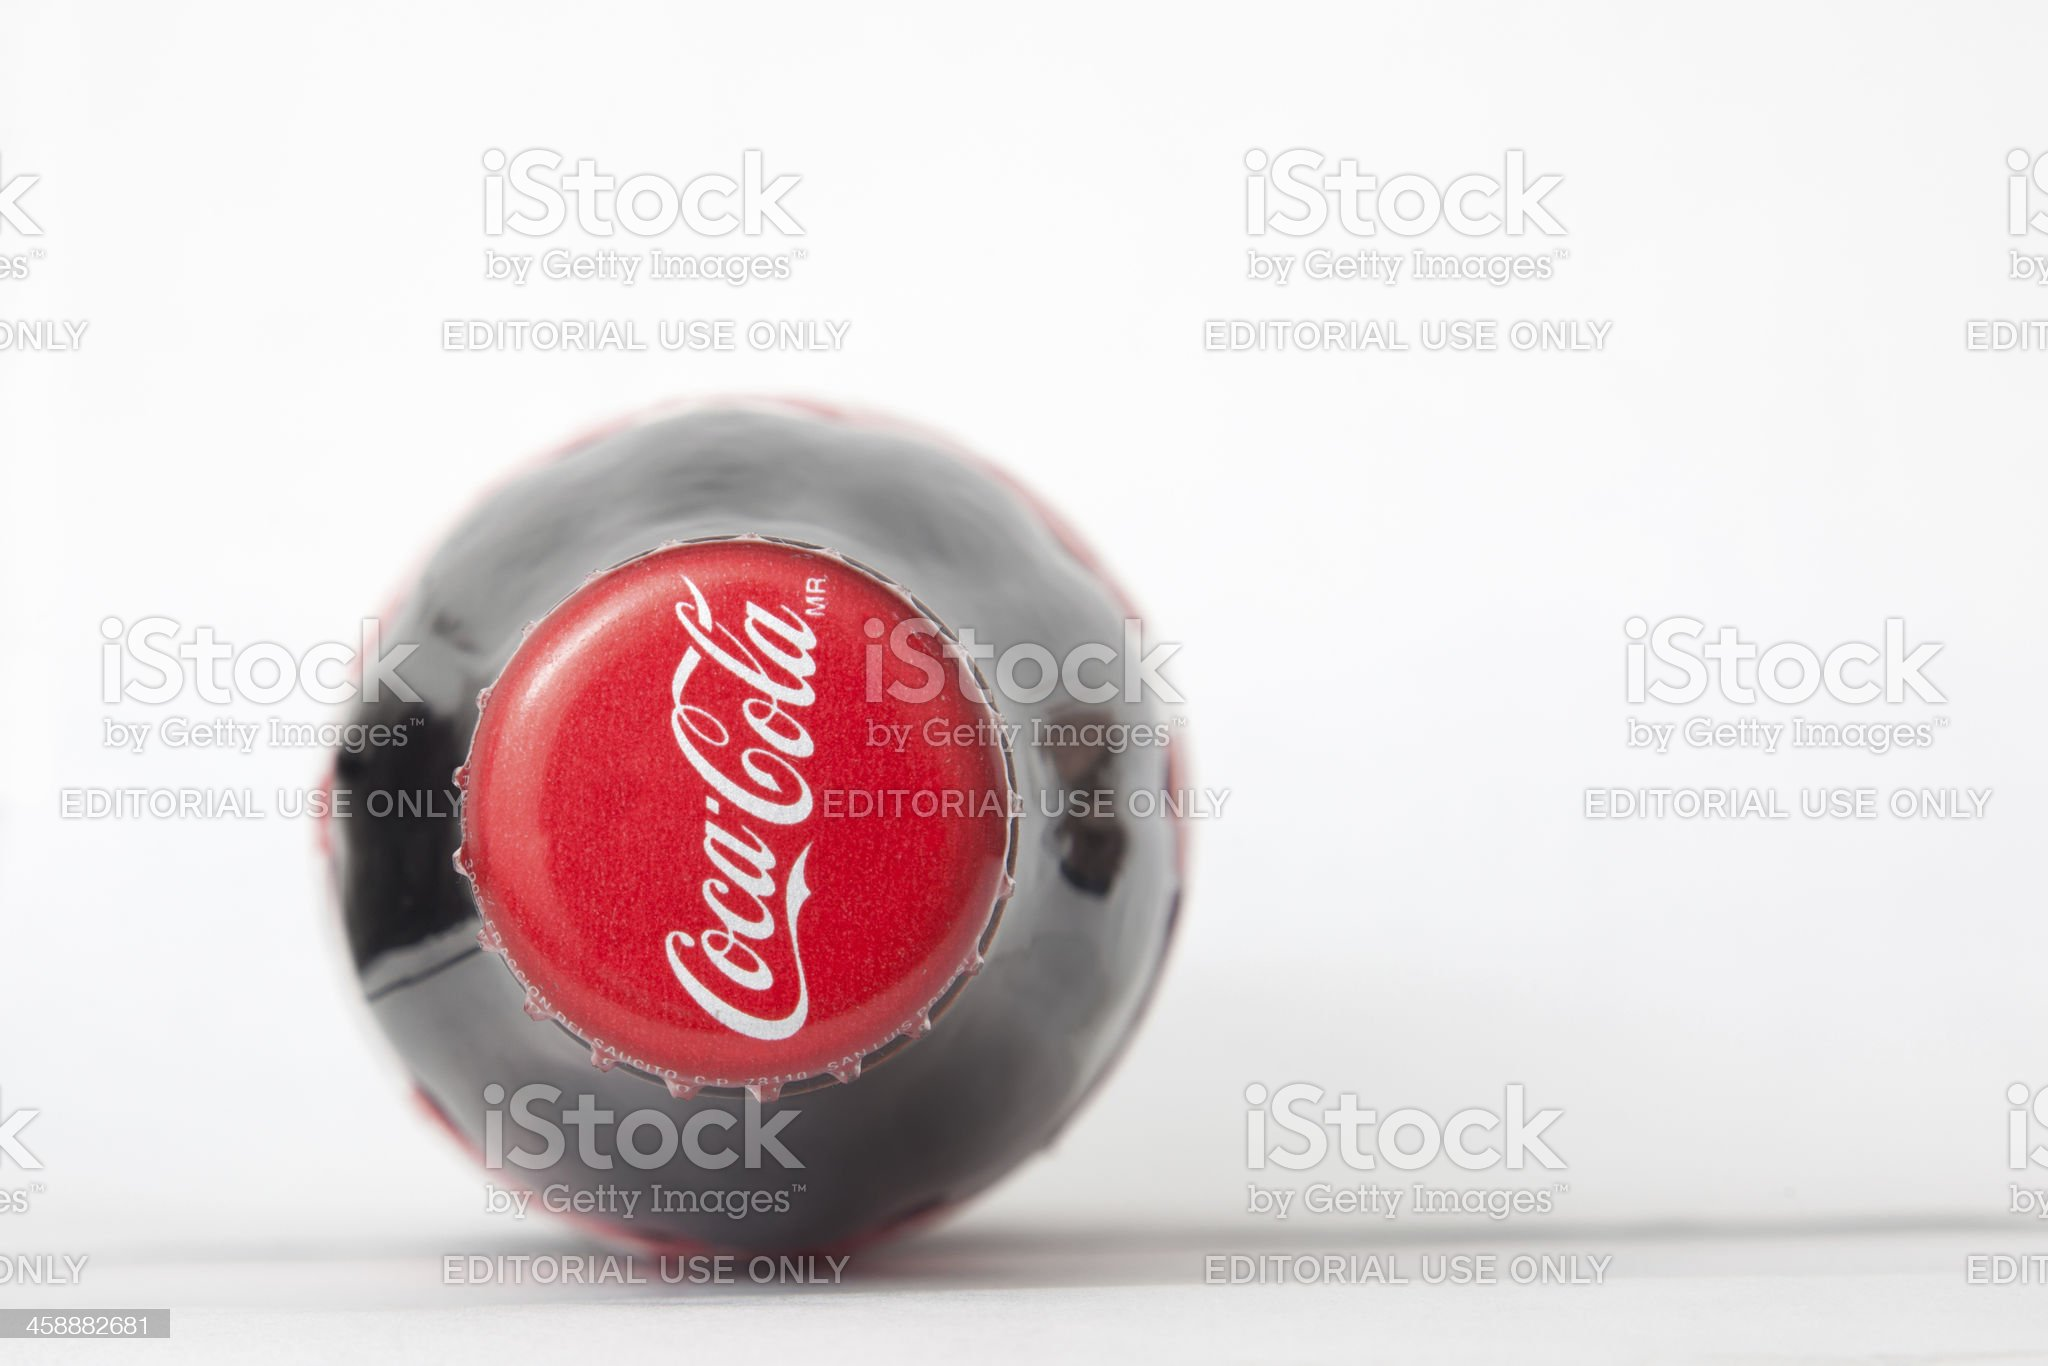 Classic Cola bottle royalty-free stock photo